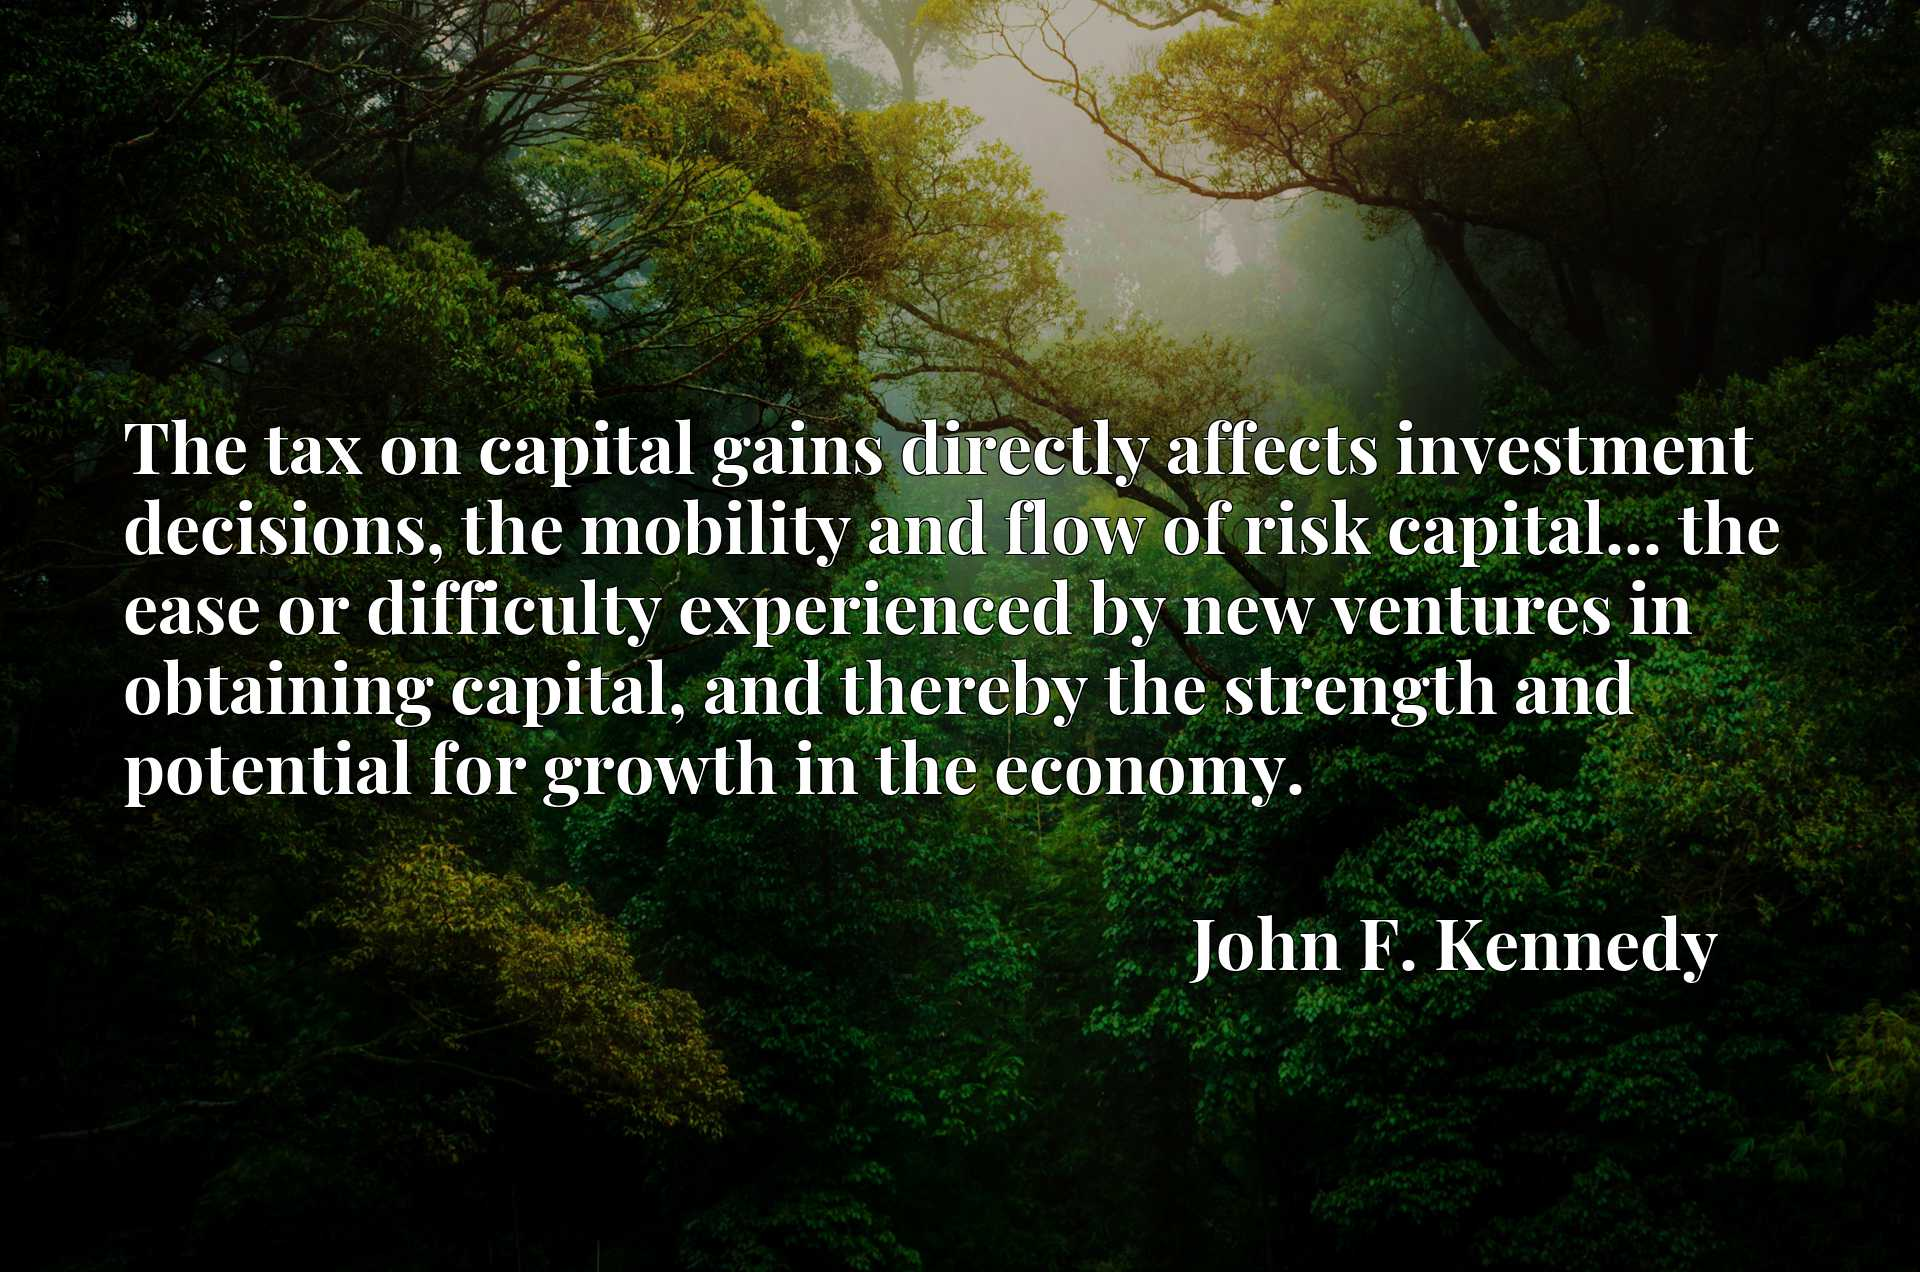 Quote Picture :The tax on capital gains directly affects investment decisions, the mobility and flow of risk capital... the ease or difficulty experienced by new ventures in obtaining capital, and thereby the strength and potential for growth in the economy.